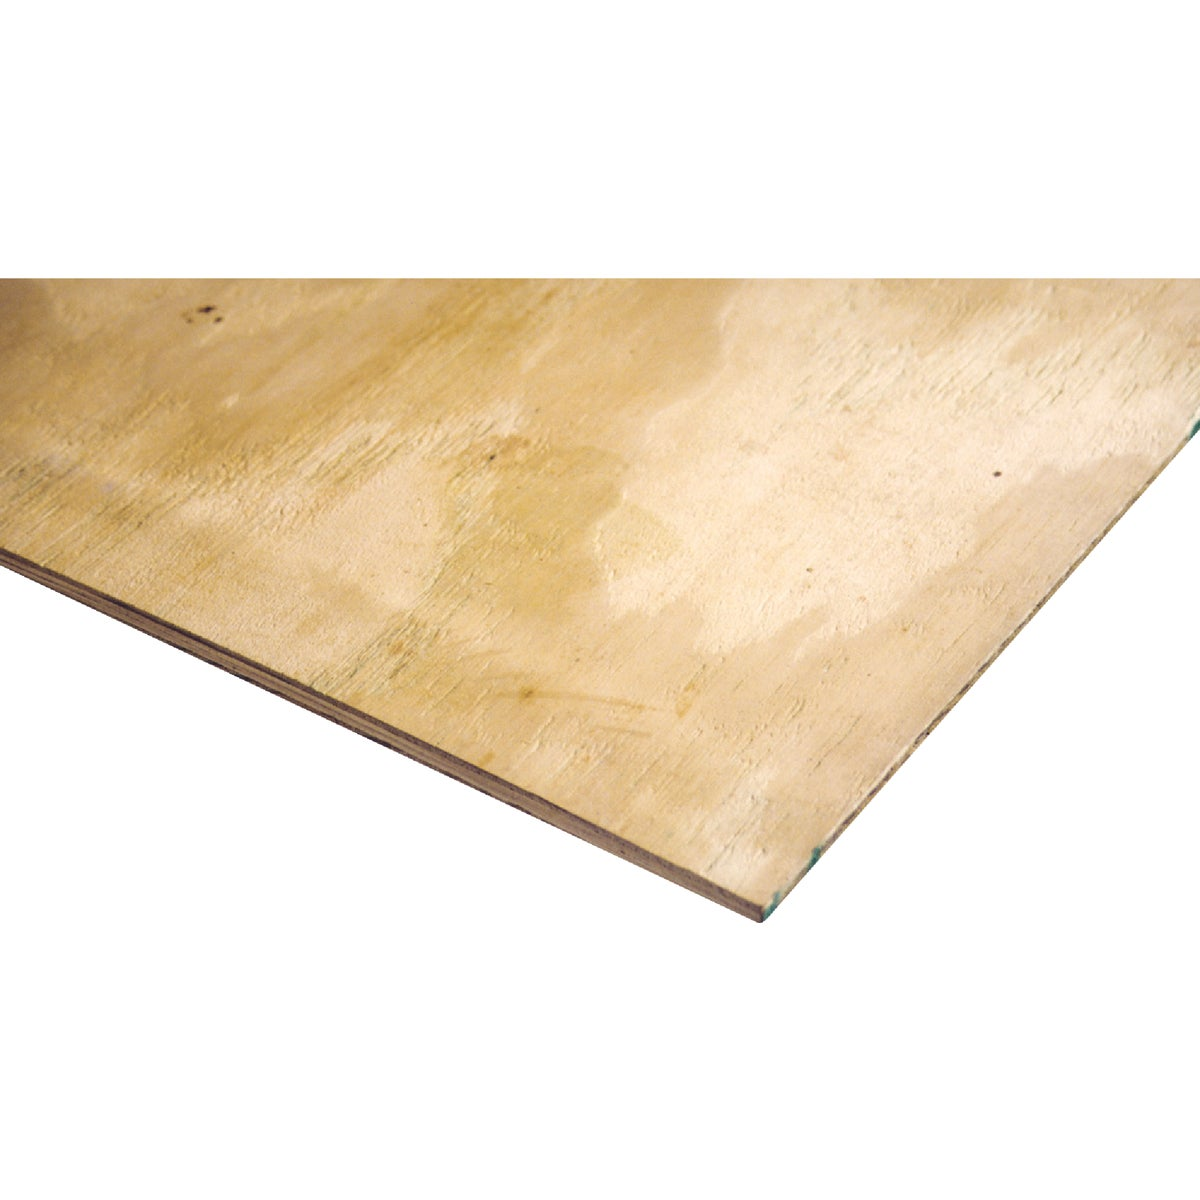 1/2X24X48 BCX PN PLYWOOD - 12609 by Ufpi Lbr & Treated